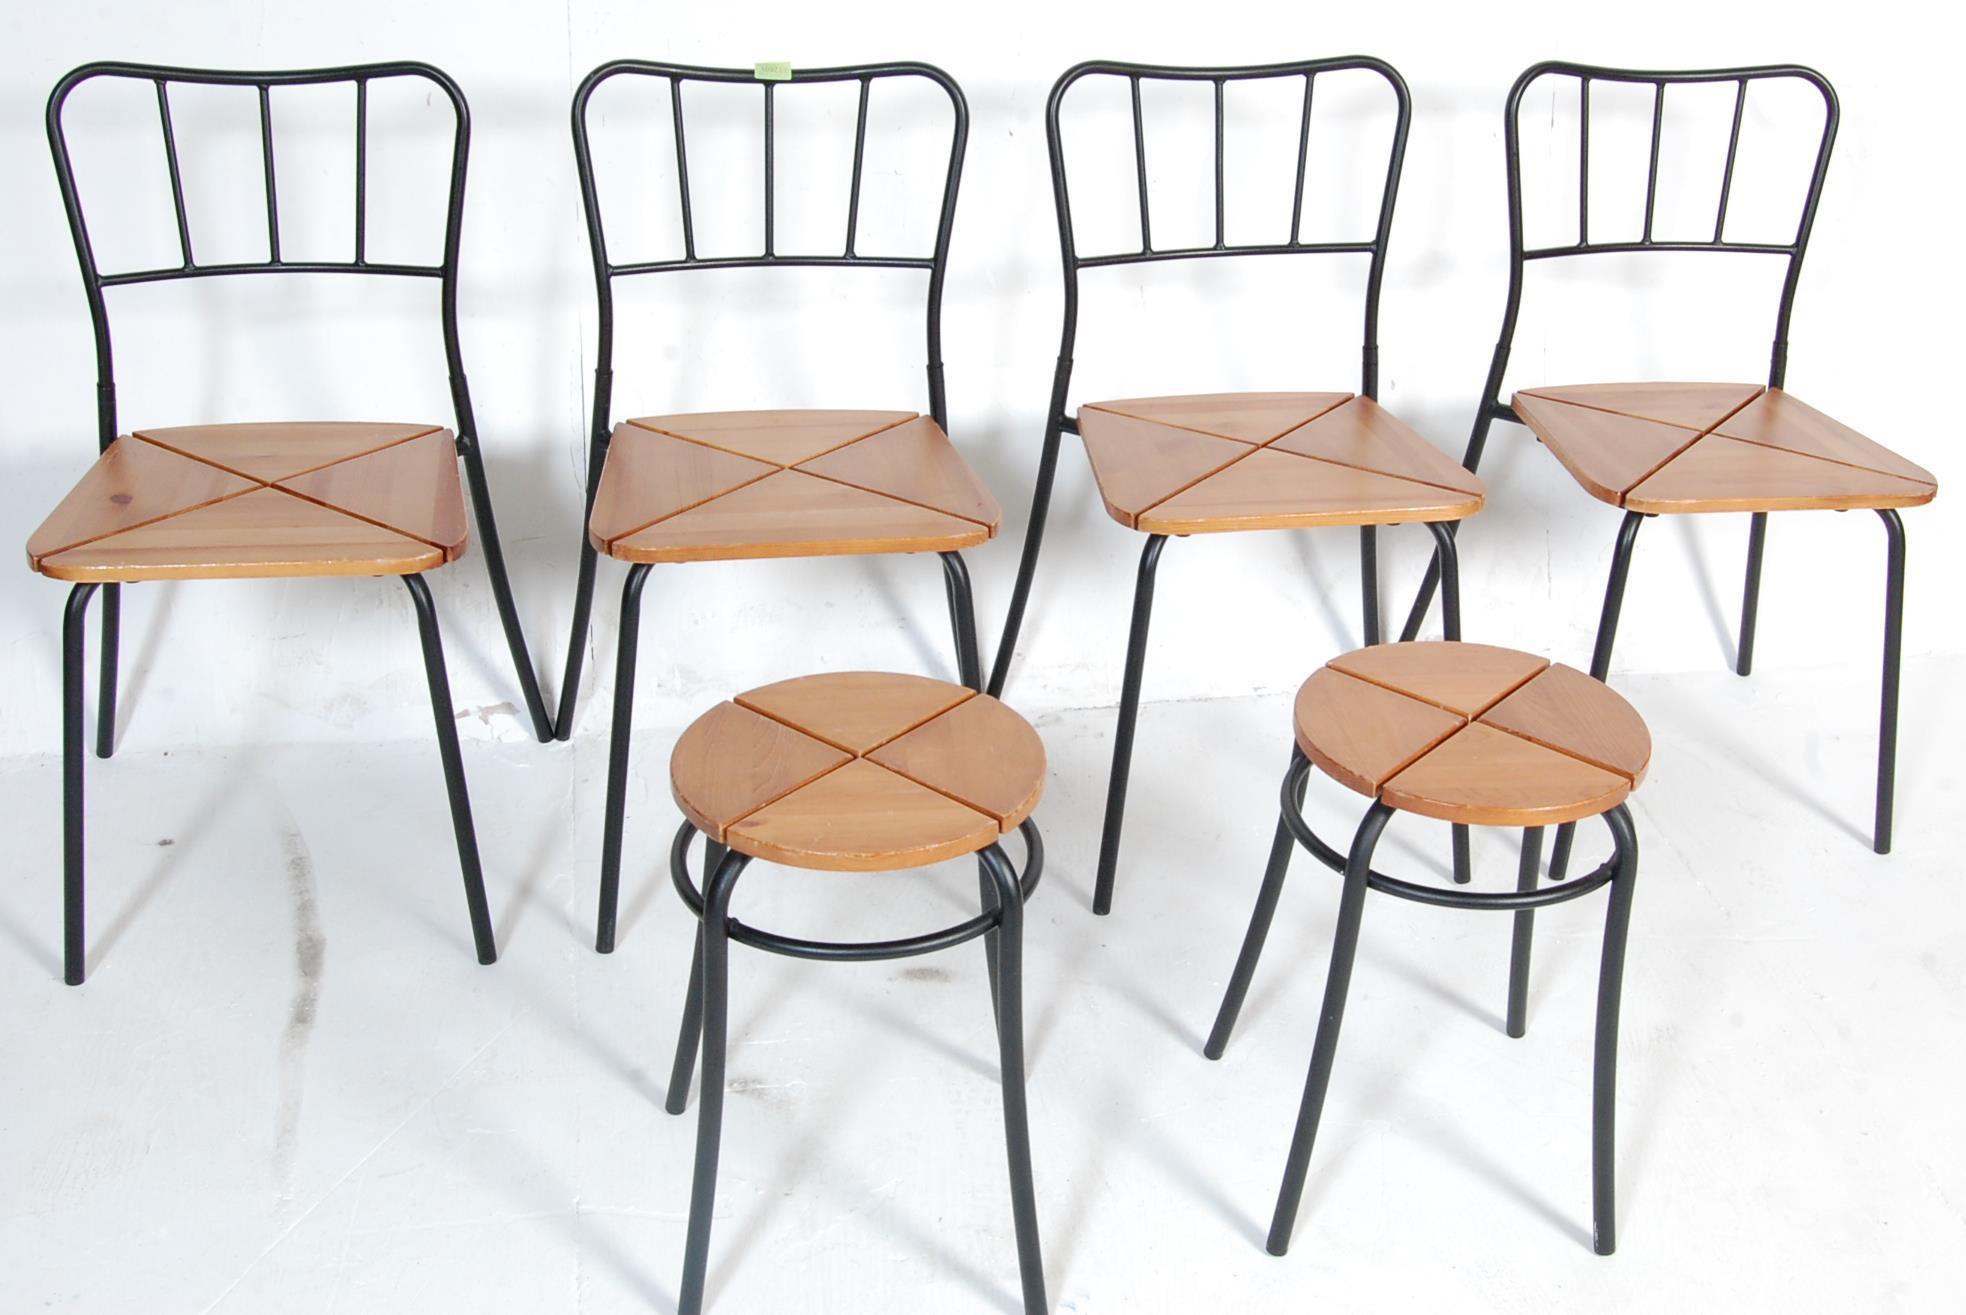 SET OF FOUR CONTEMPORARY INDUSTRIAL DINING CHAIRS - Image 2 of 7